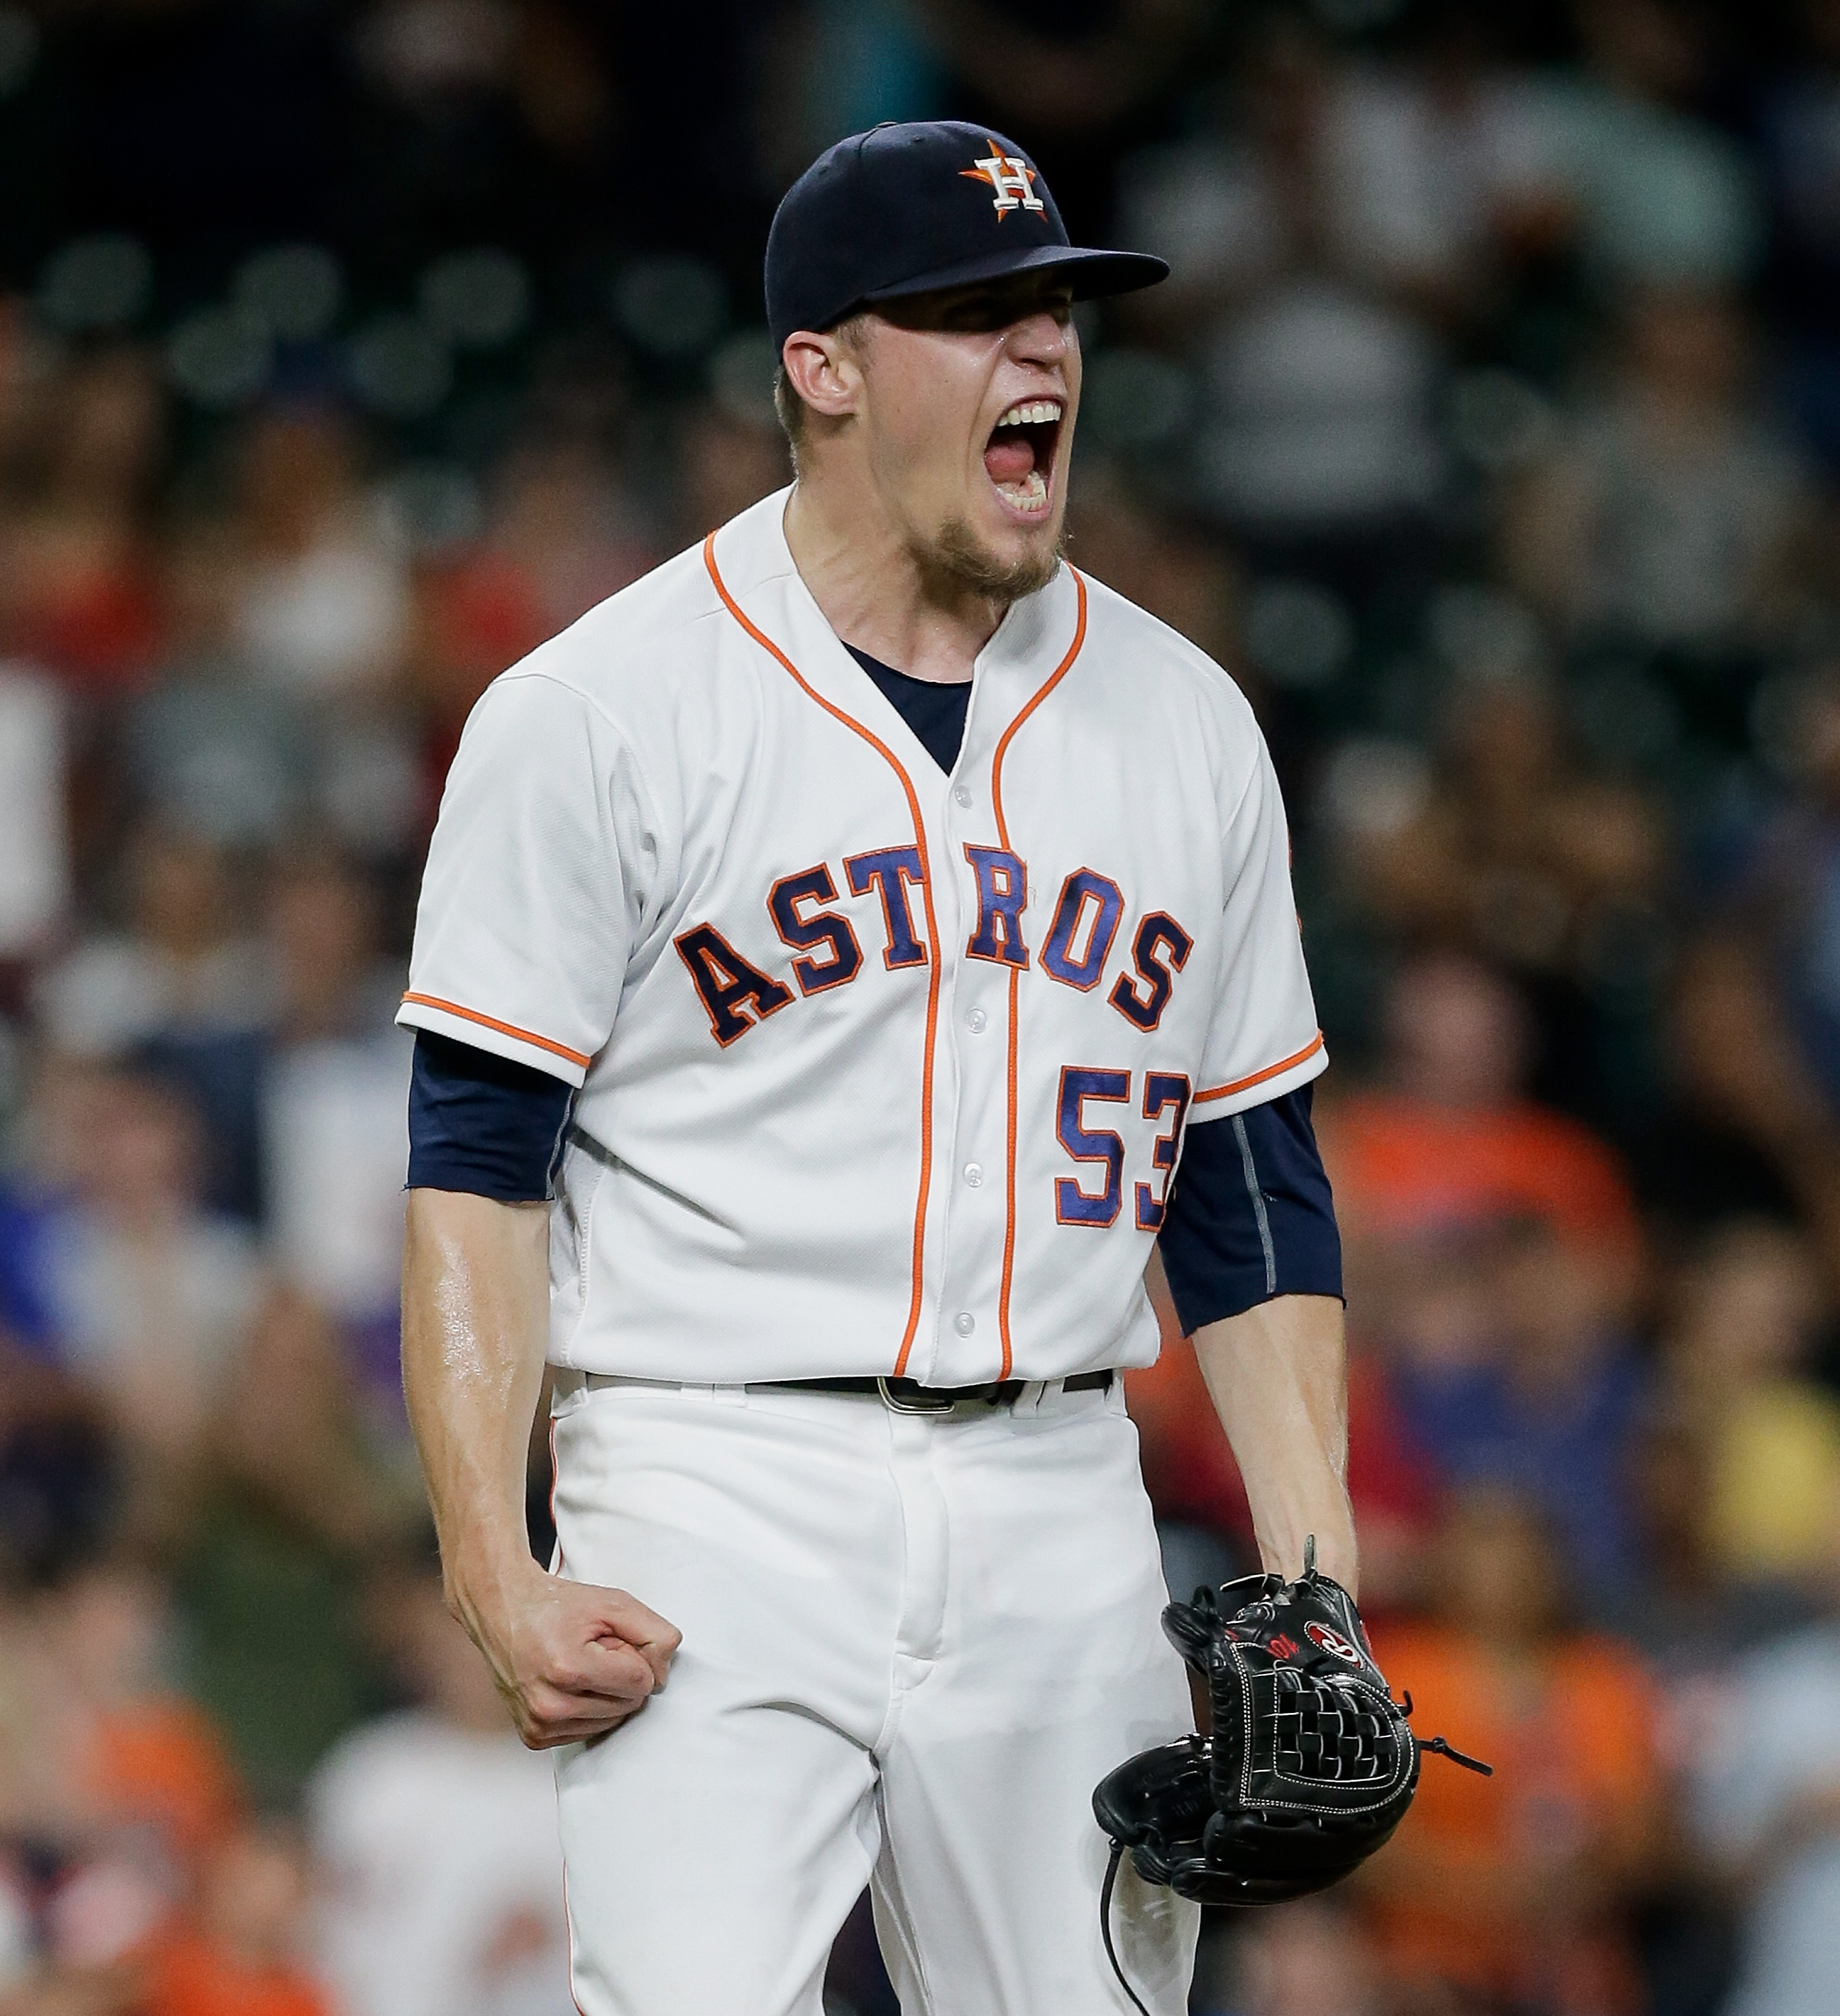 HOUSTON, TX - AUGUST 01: Ken Giles #53 of the Houston Astros reacts after striking out Michael Saunders #21 of the Toronto Blue Jays in the eighth inning at Minute Maid Park on August 1, 2016 in Houston, Texas. (Photo by Bob Levey/Getty Images)